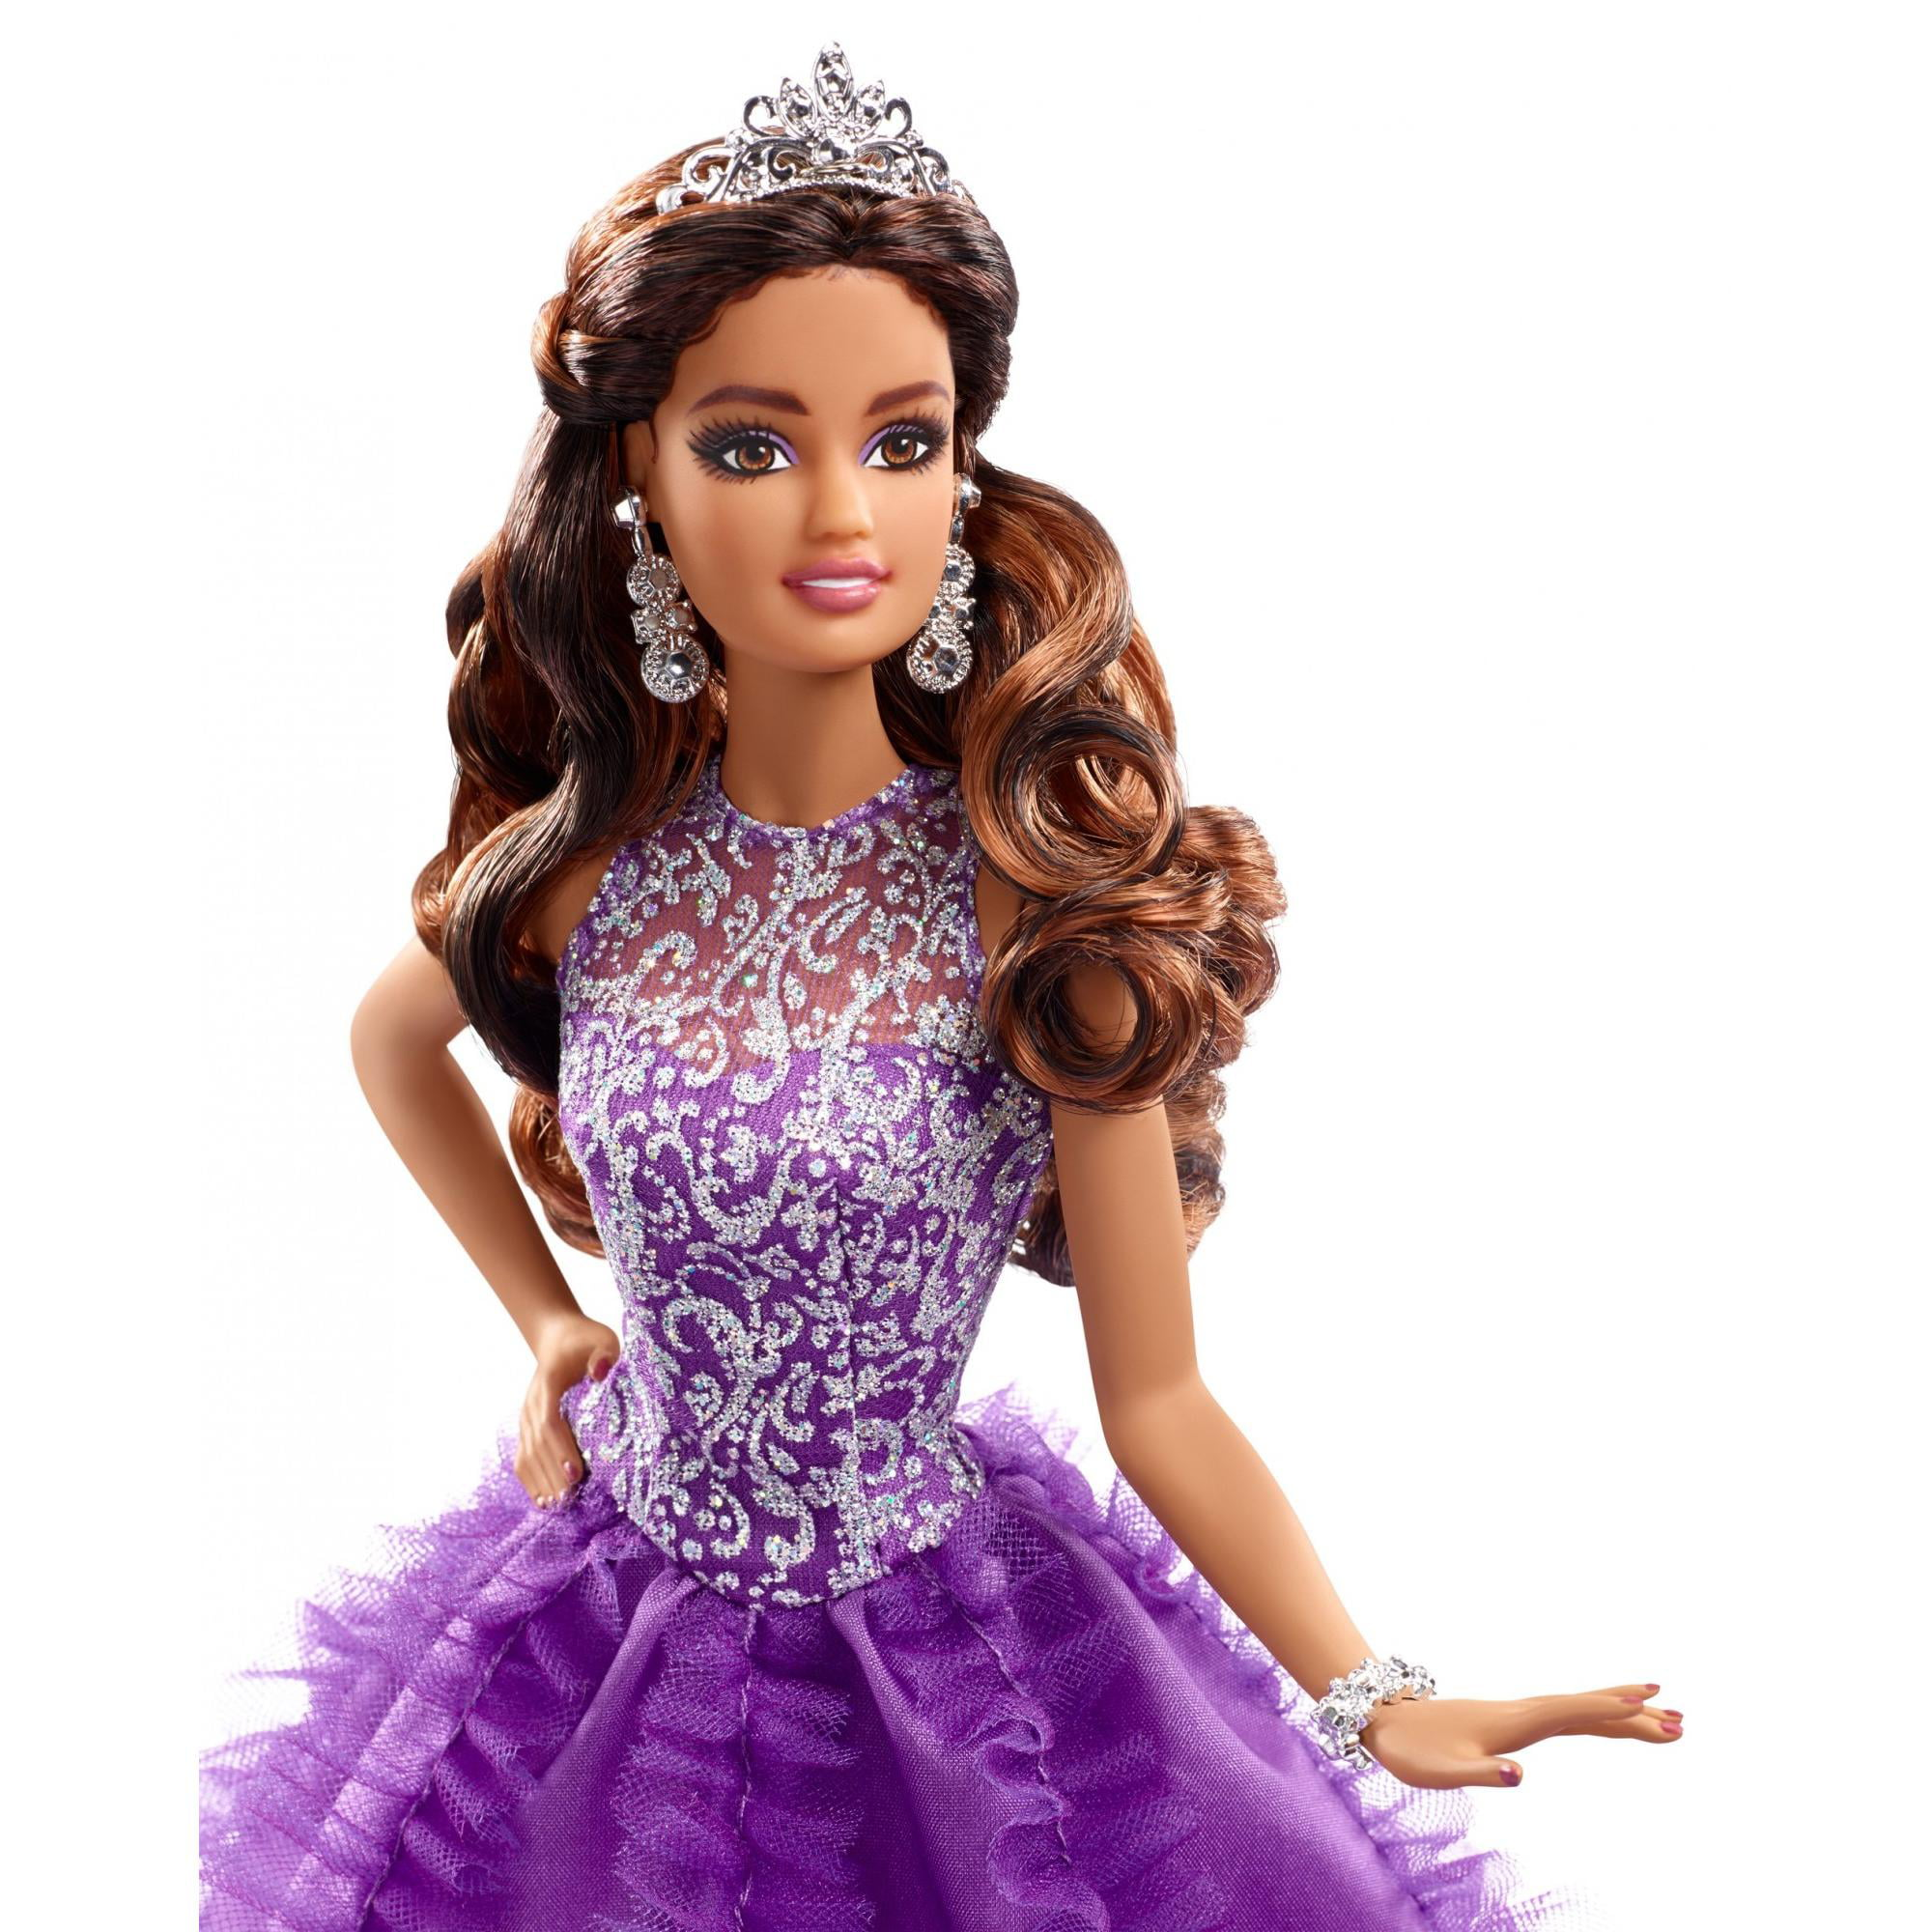 bdd3bc20a05 Barbie Collector Quinceanera Doll with Sparkling Purple Gown   Tiara -  Walmart.com